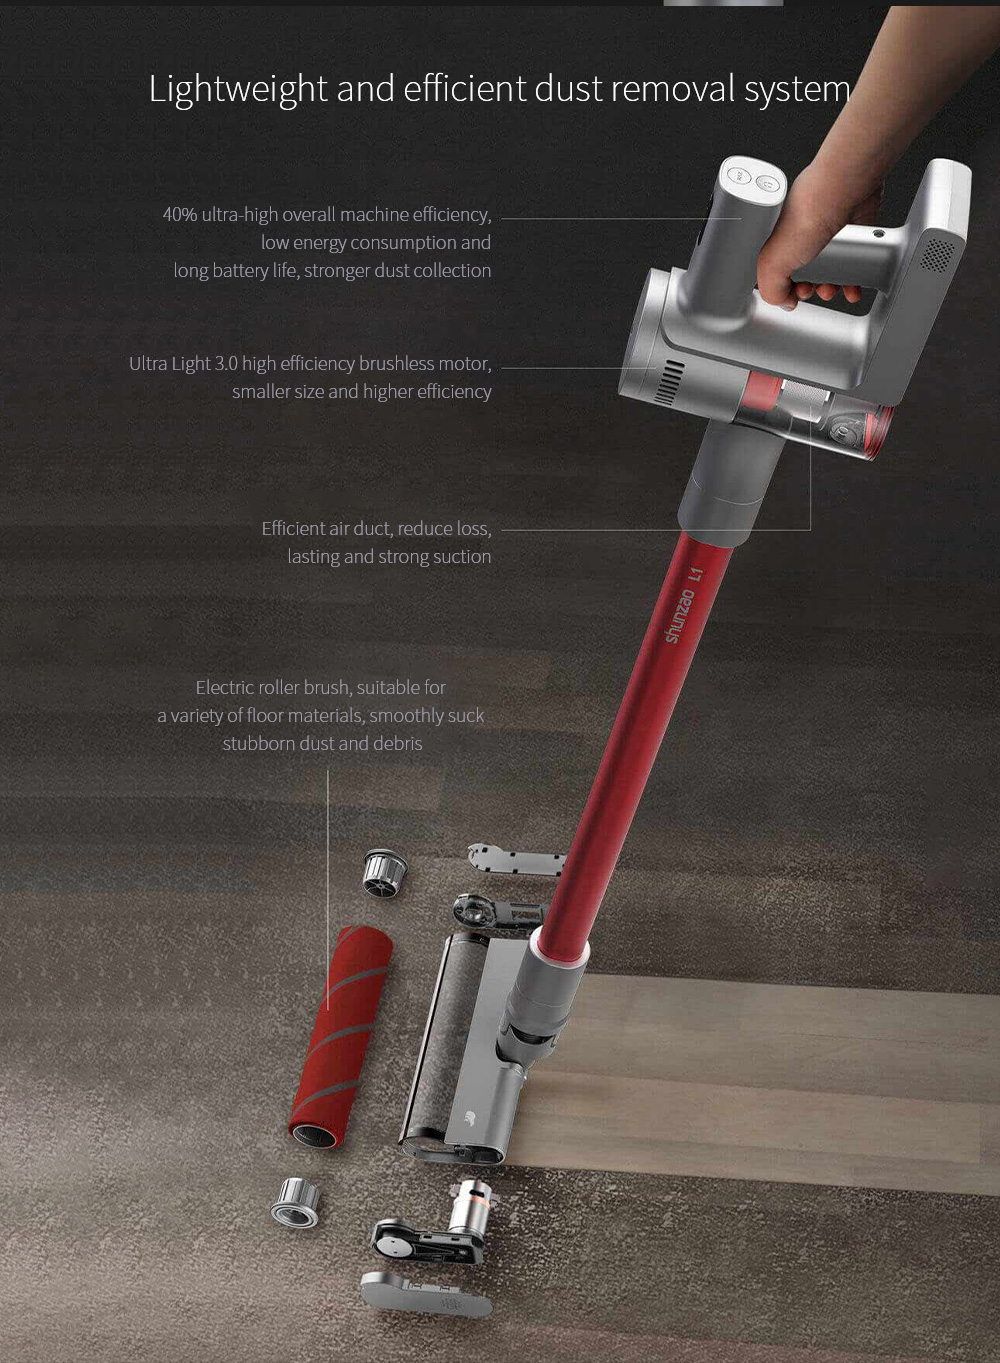 Shun Zao L1 Vacuum Cleaner Lightweight and efficient dust removal system